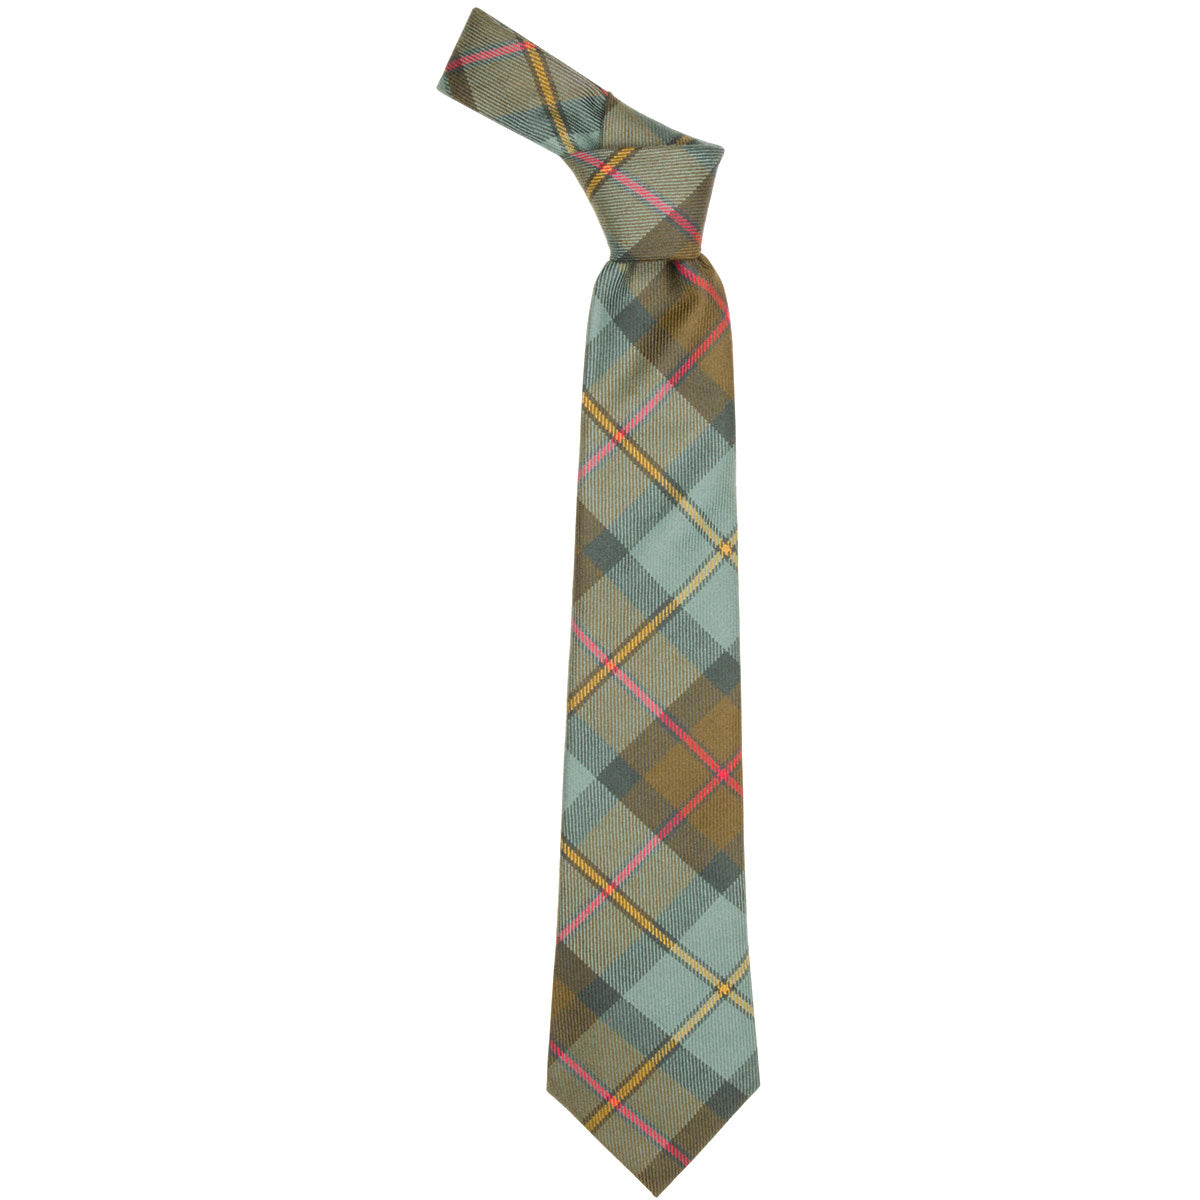 MacLeod of Harris Weathered Tartan Tie from Anderson Kilts